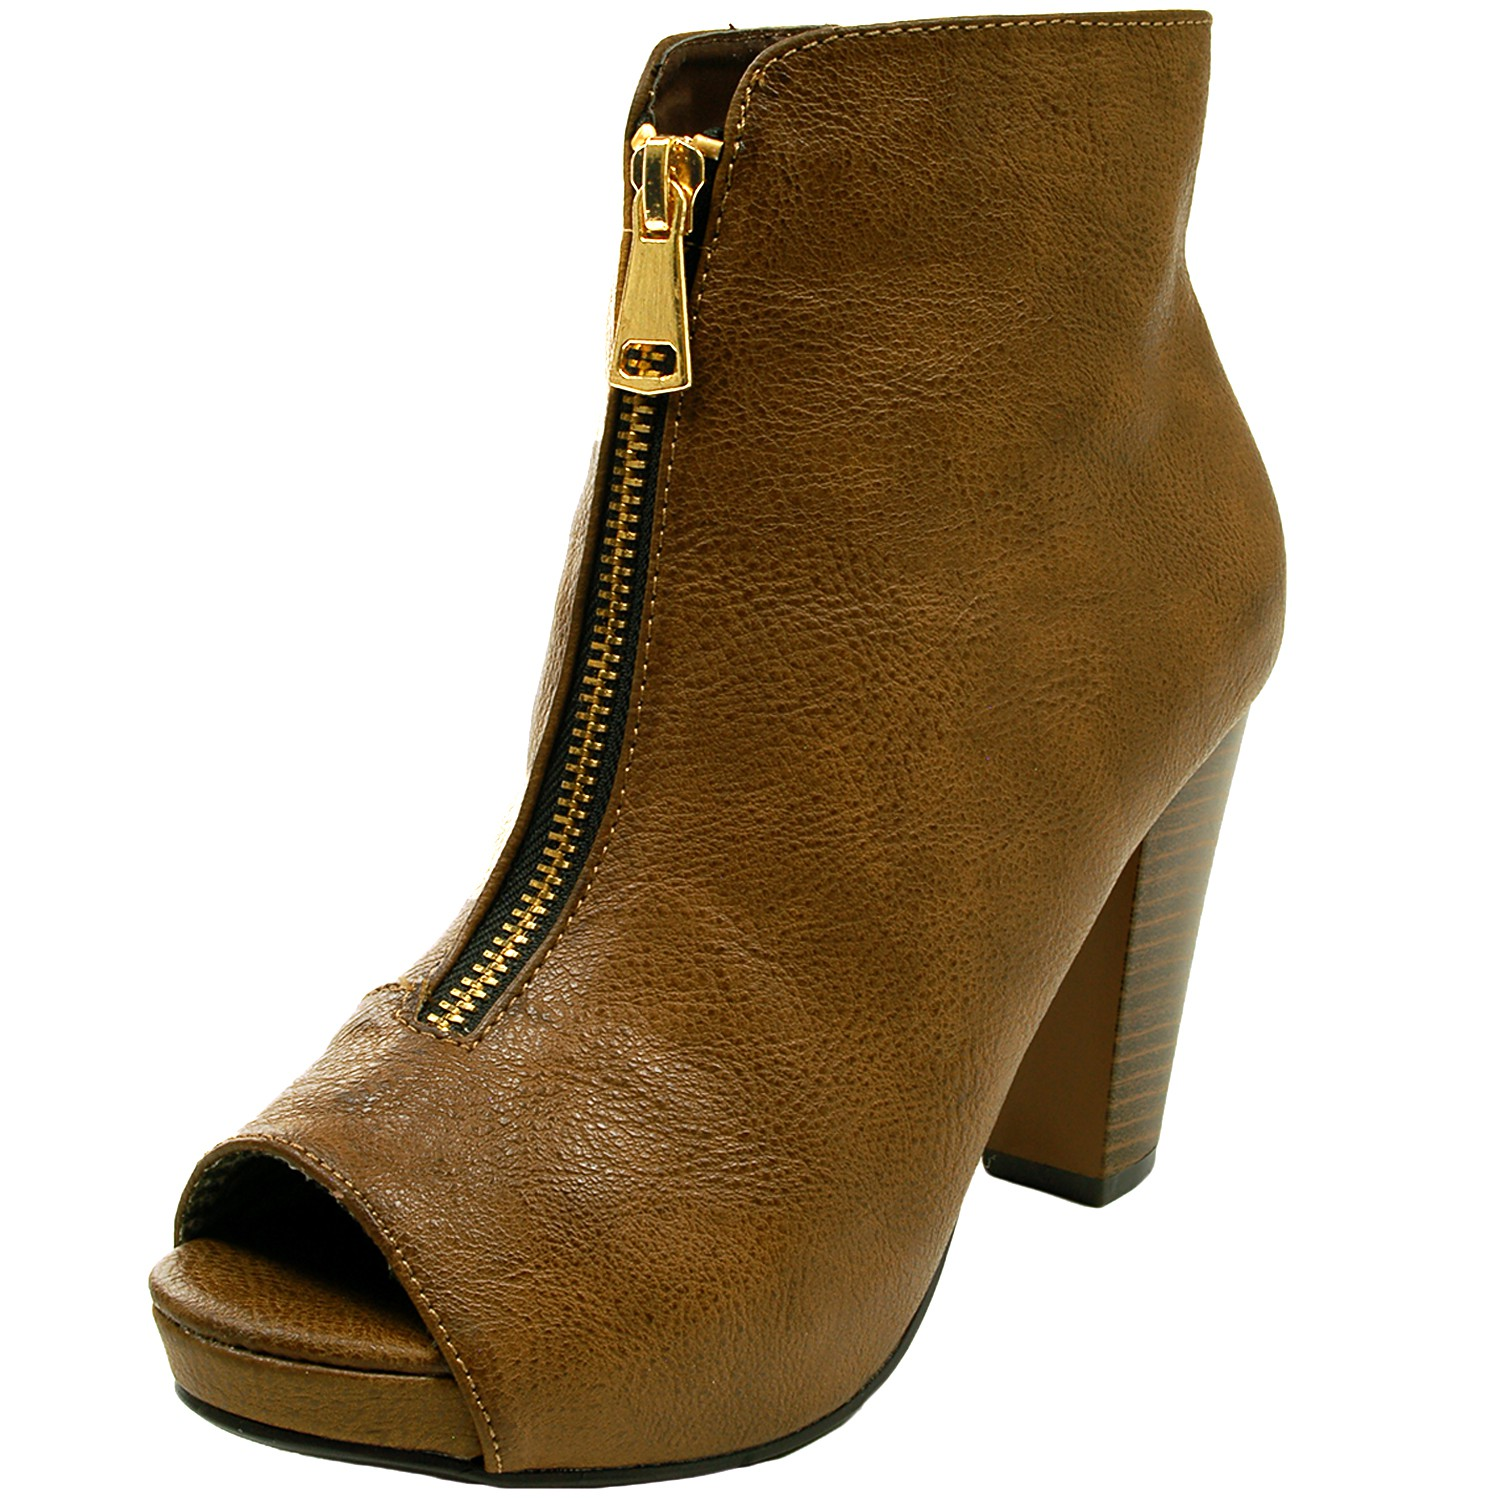 Original Chestnut Faux Leather Chunky Knee High Combat Boots @ Cicihot Heel Shoes Online Store Sales ...